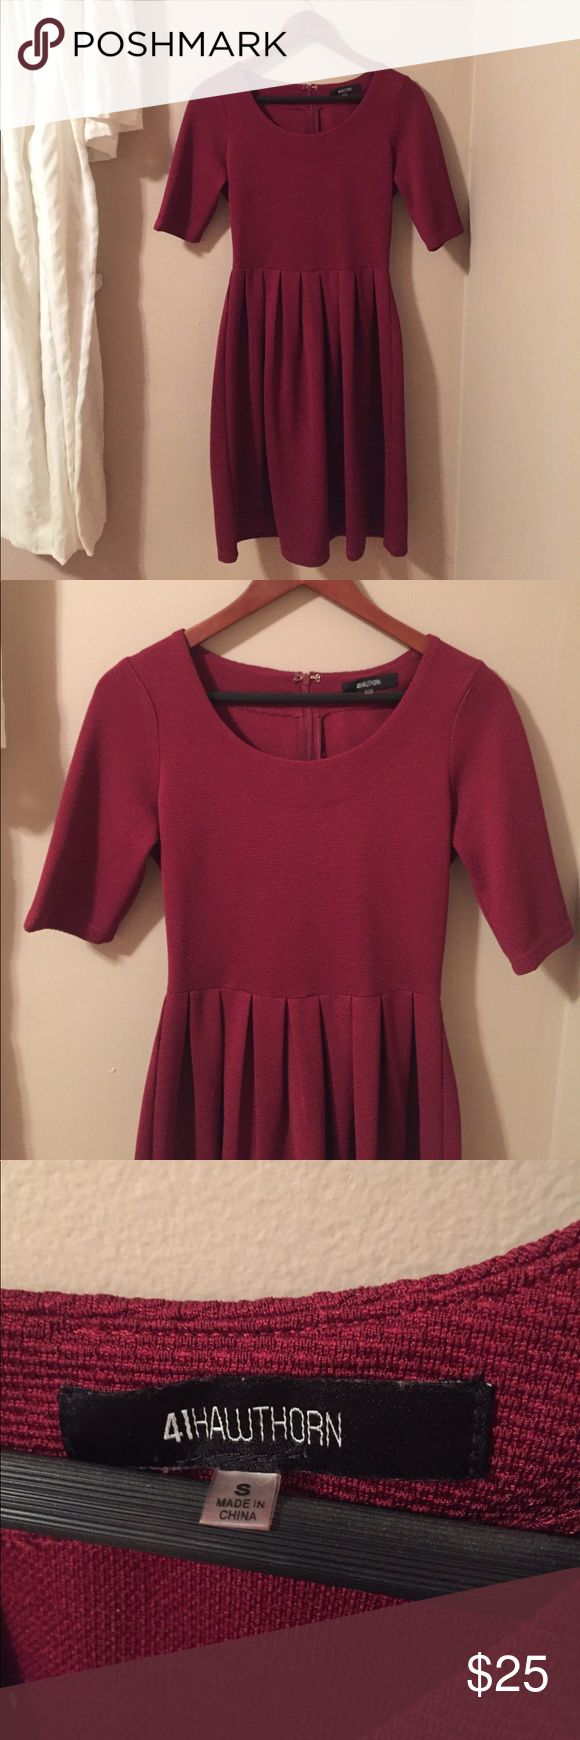 41 Hawthorn Maroon Skater Dress This was purchased in a stitch fix box. Very high quality dress. Fitted material with some stretch. Quarter sleeve with zip back. Like new condition. No flaws. Worn one time for tv news broadcast. 41 Hawthorn Dresses Midi